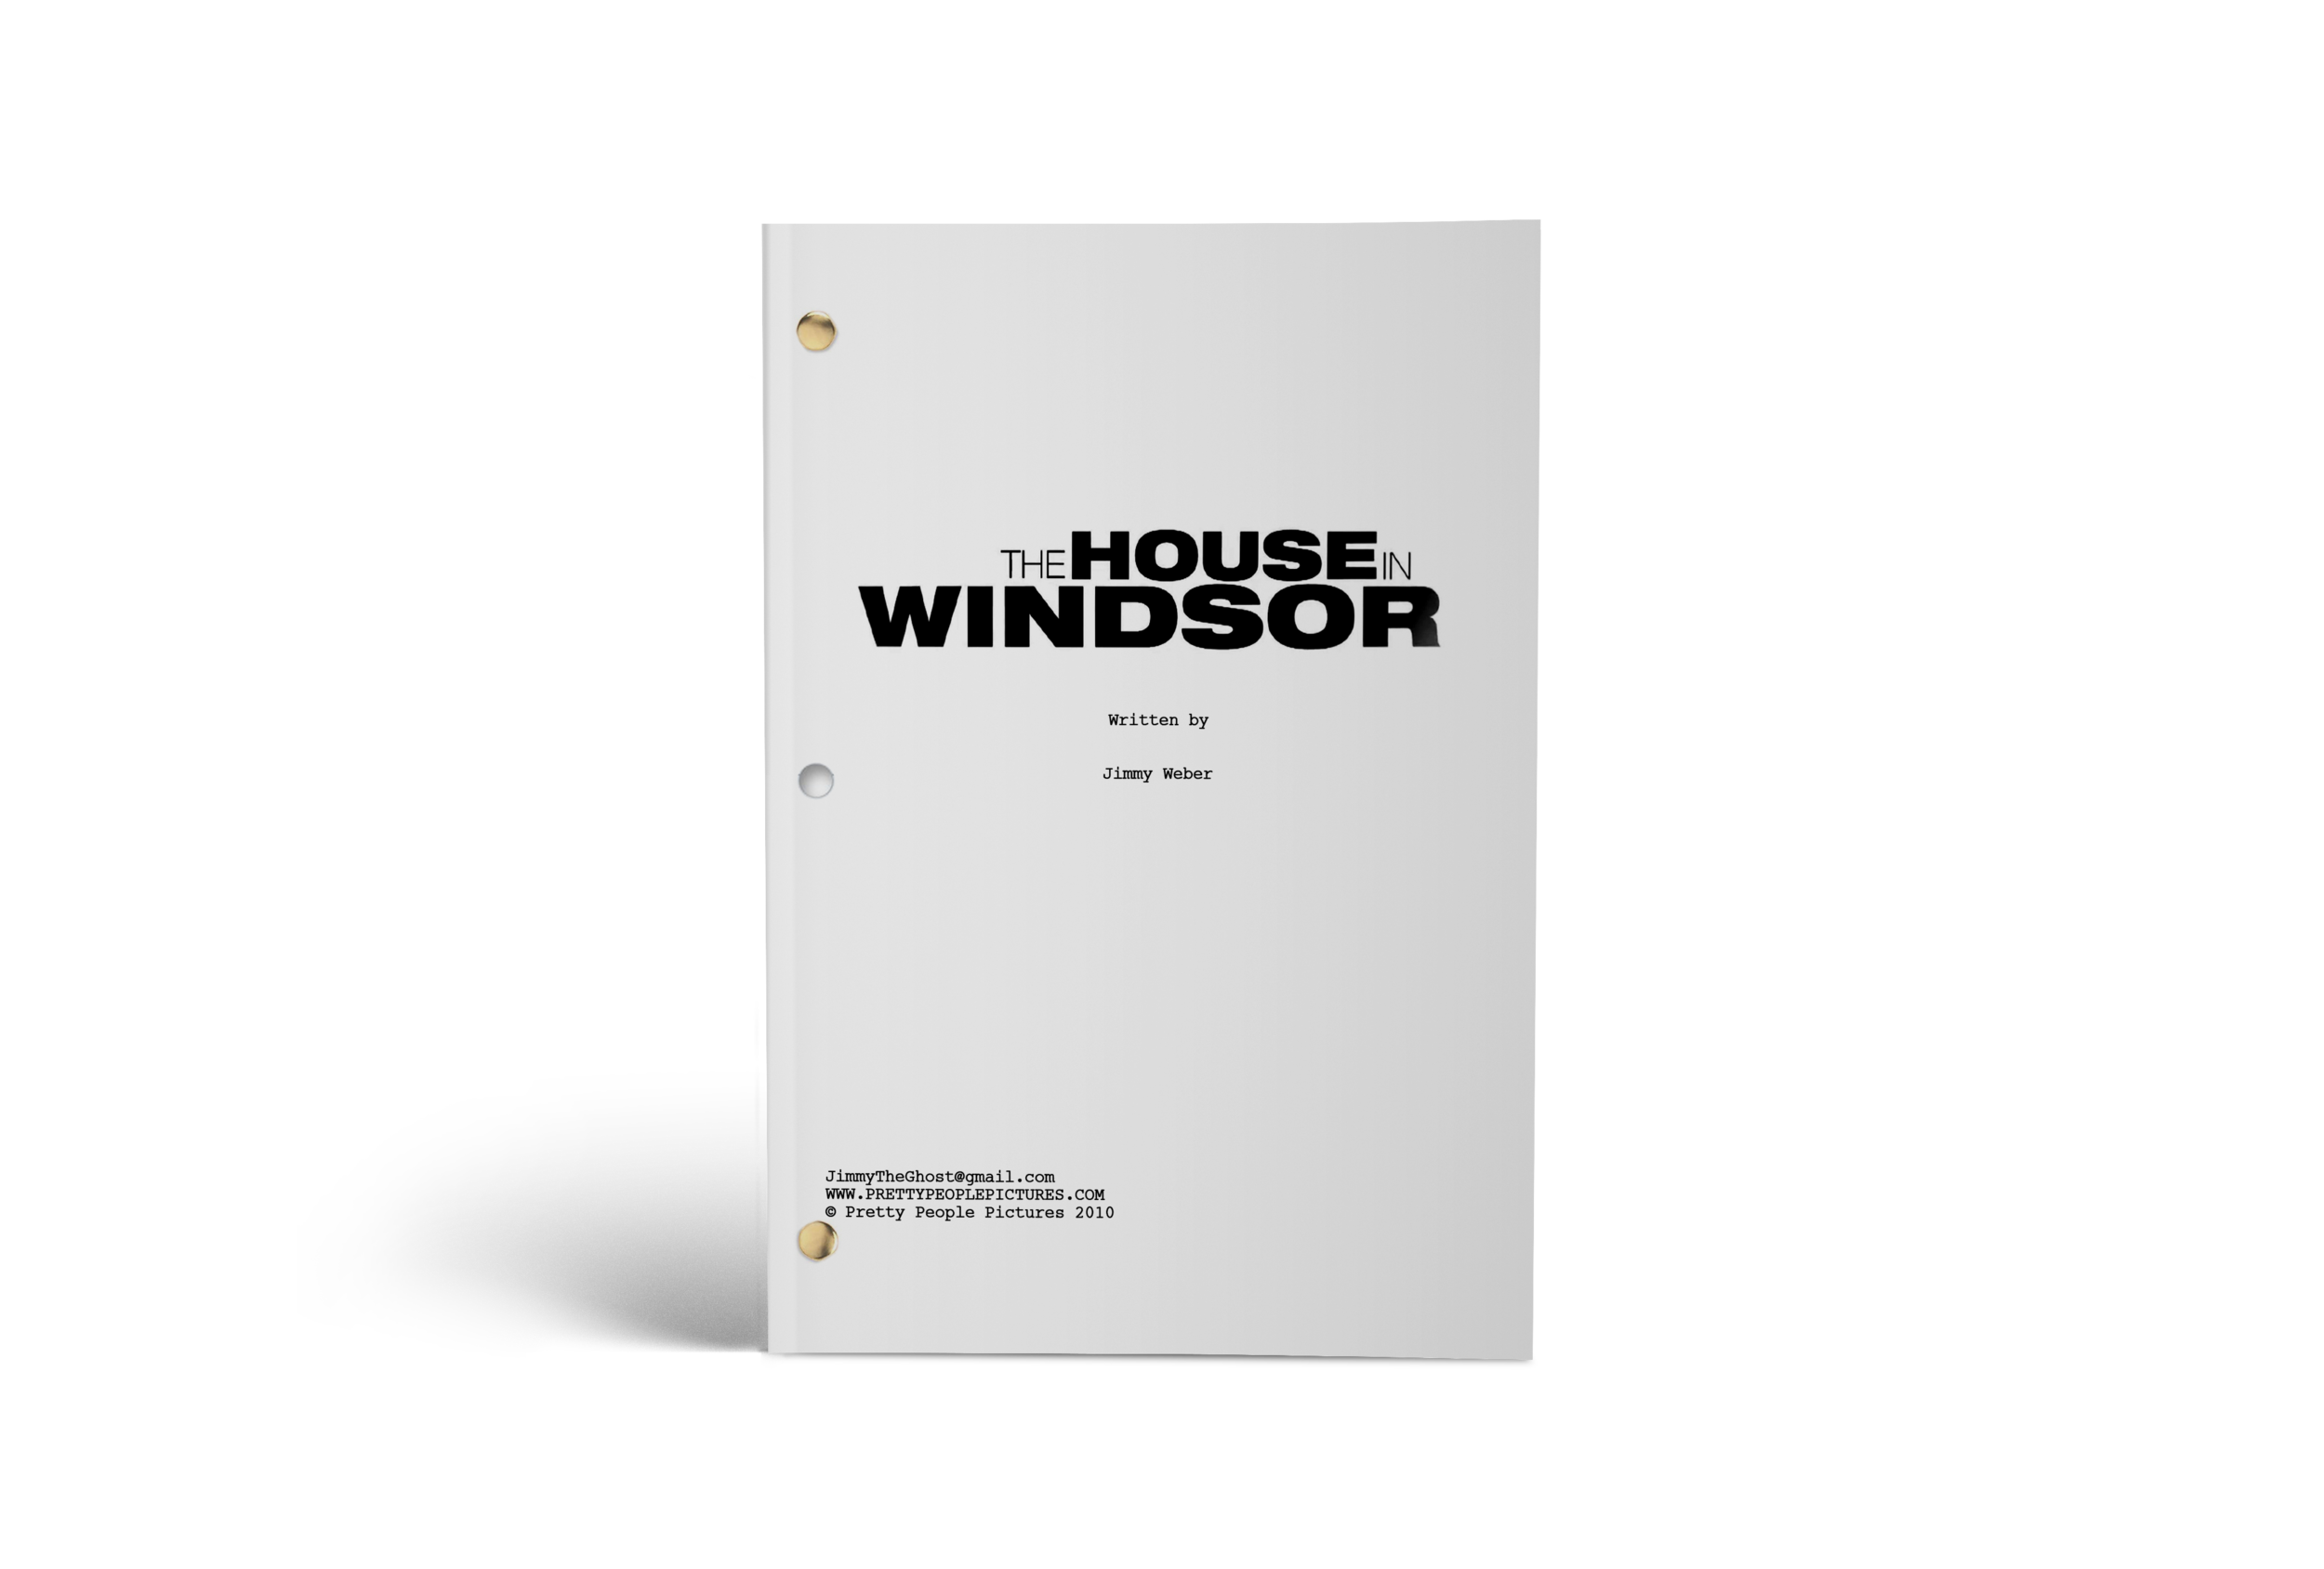 The House in Windsor - Final Transcript. 6 Pages